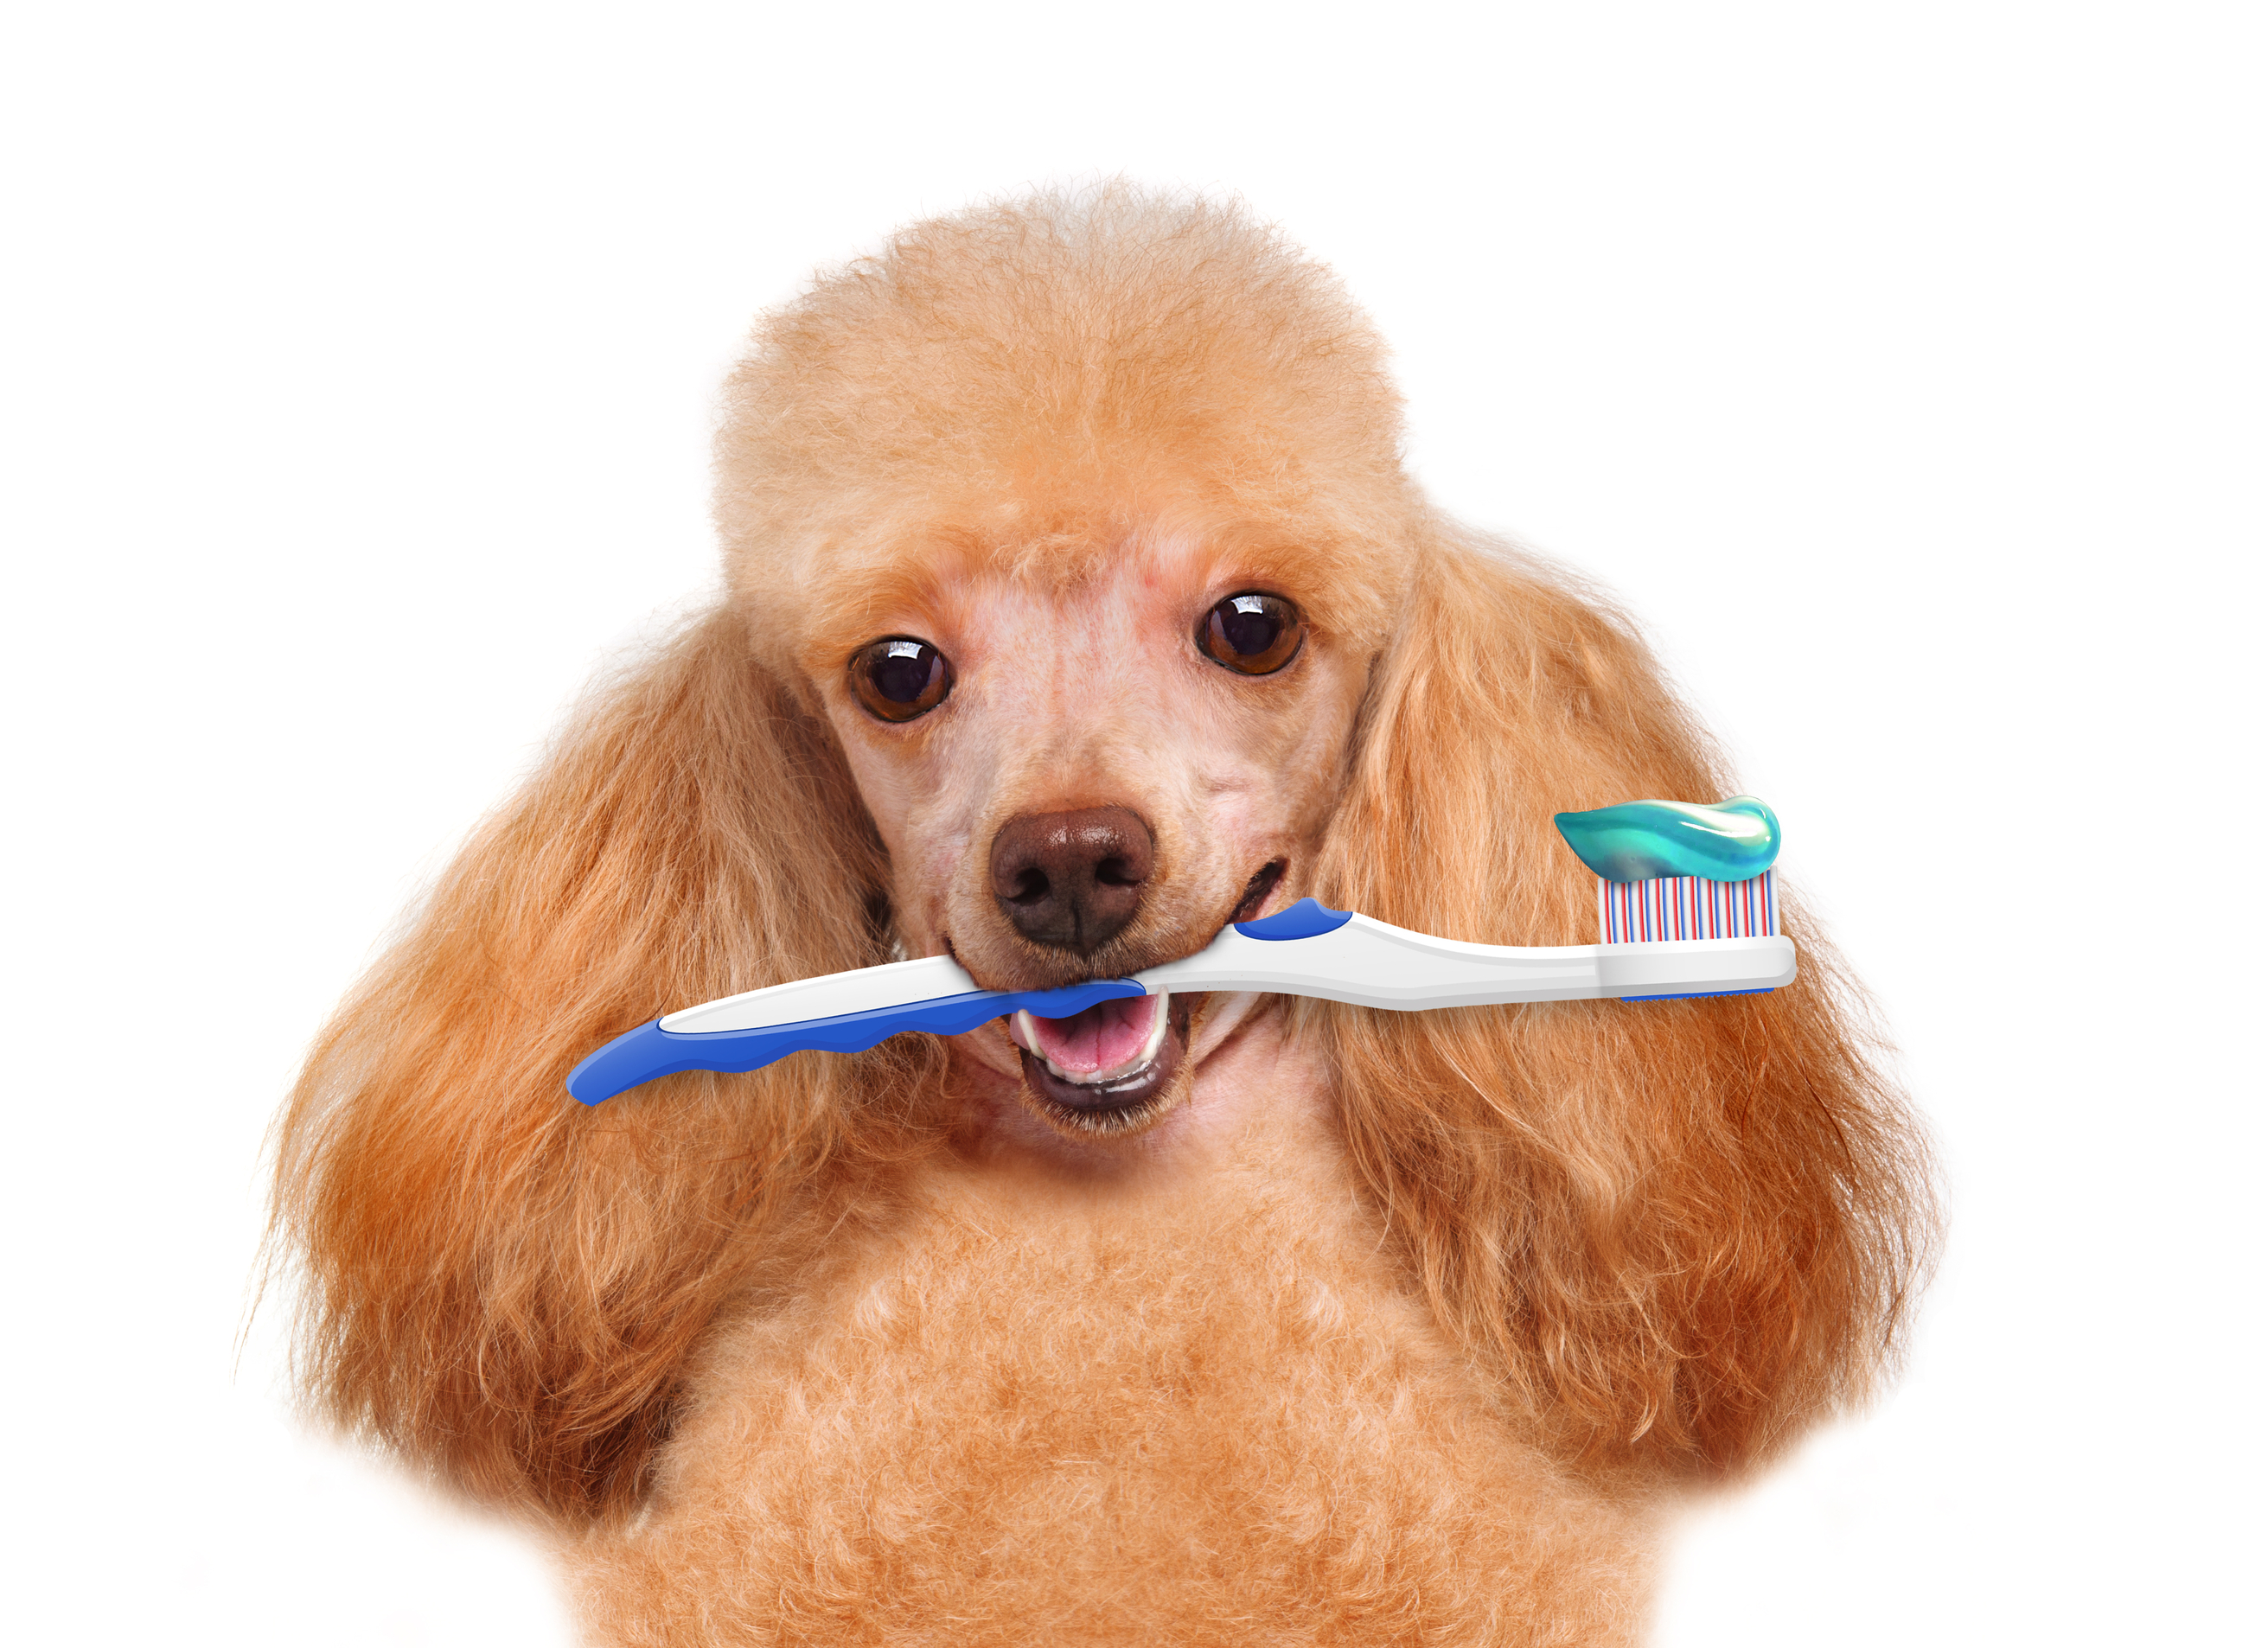 poodle with toothbrush